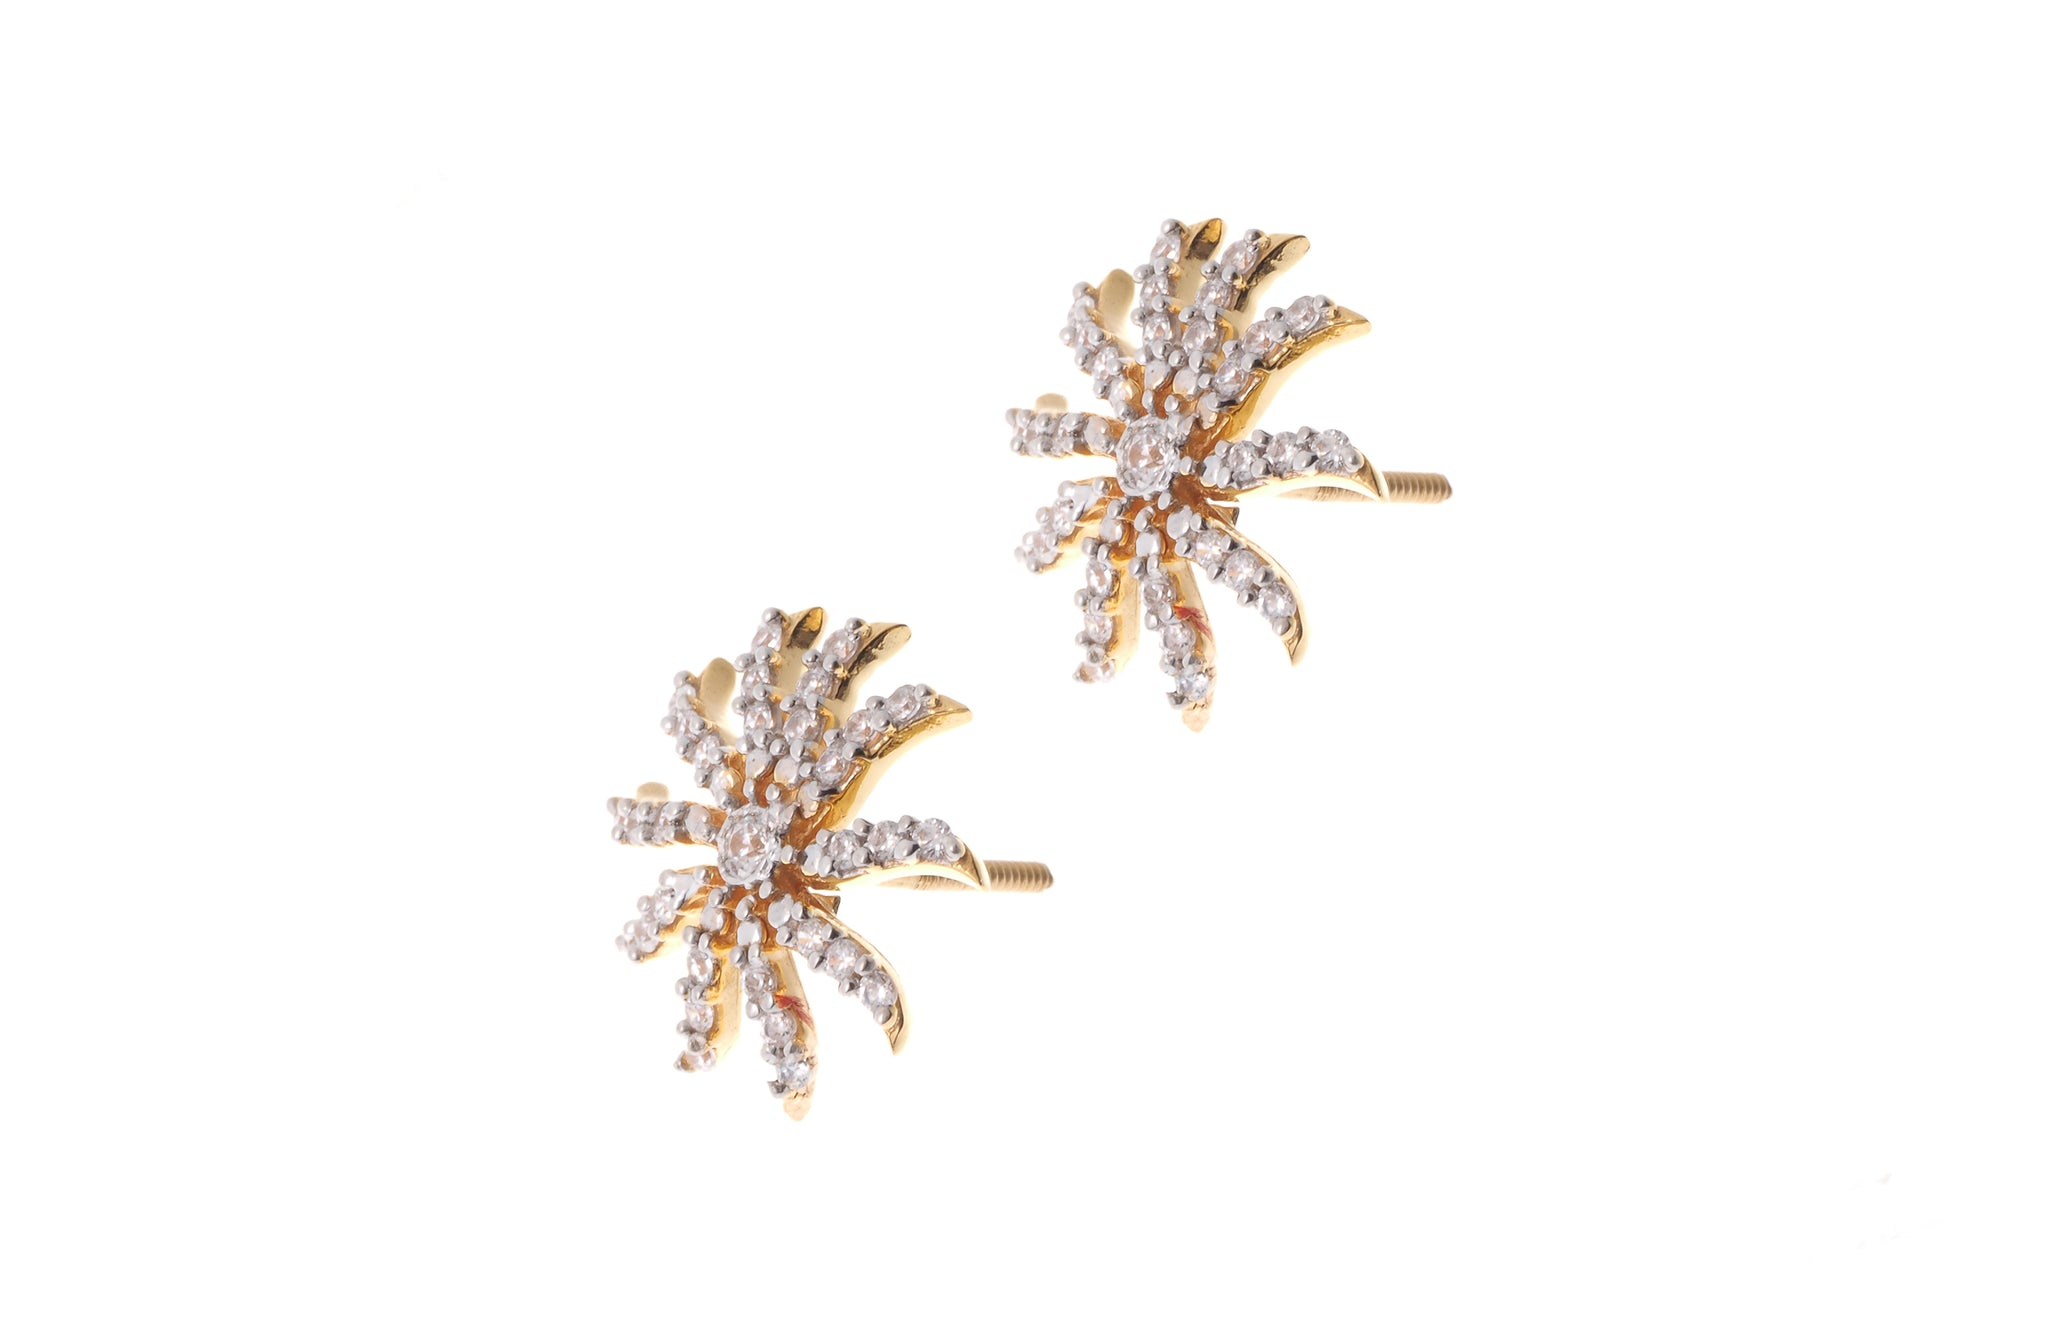 22ct Gold Cubic Zirconia Stud Earrings (5.28g) (ET9060)